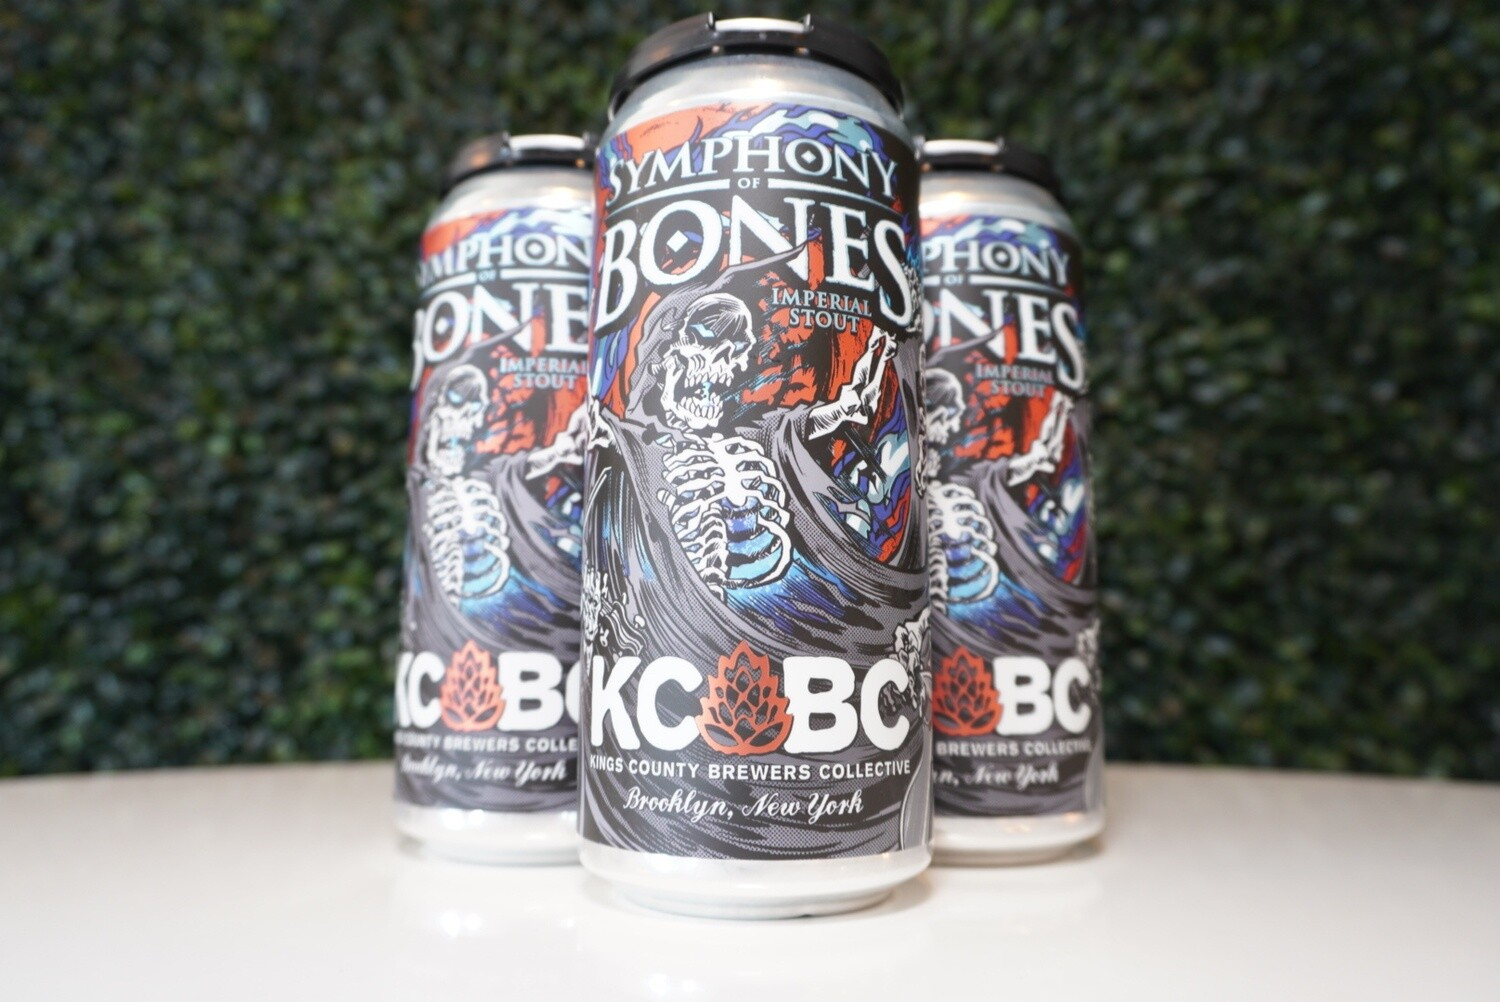 KCBC - Symphony of Bones - Imperial Milk Stout - 14% ABV - 16oz Can